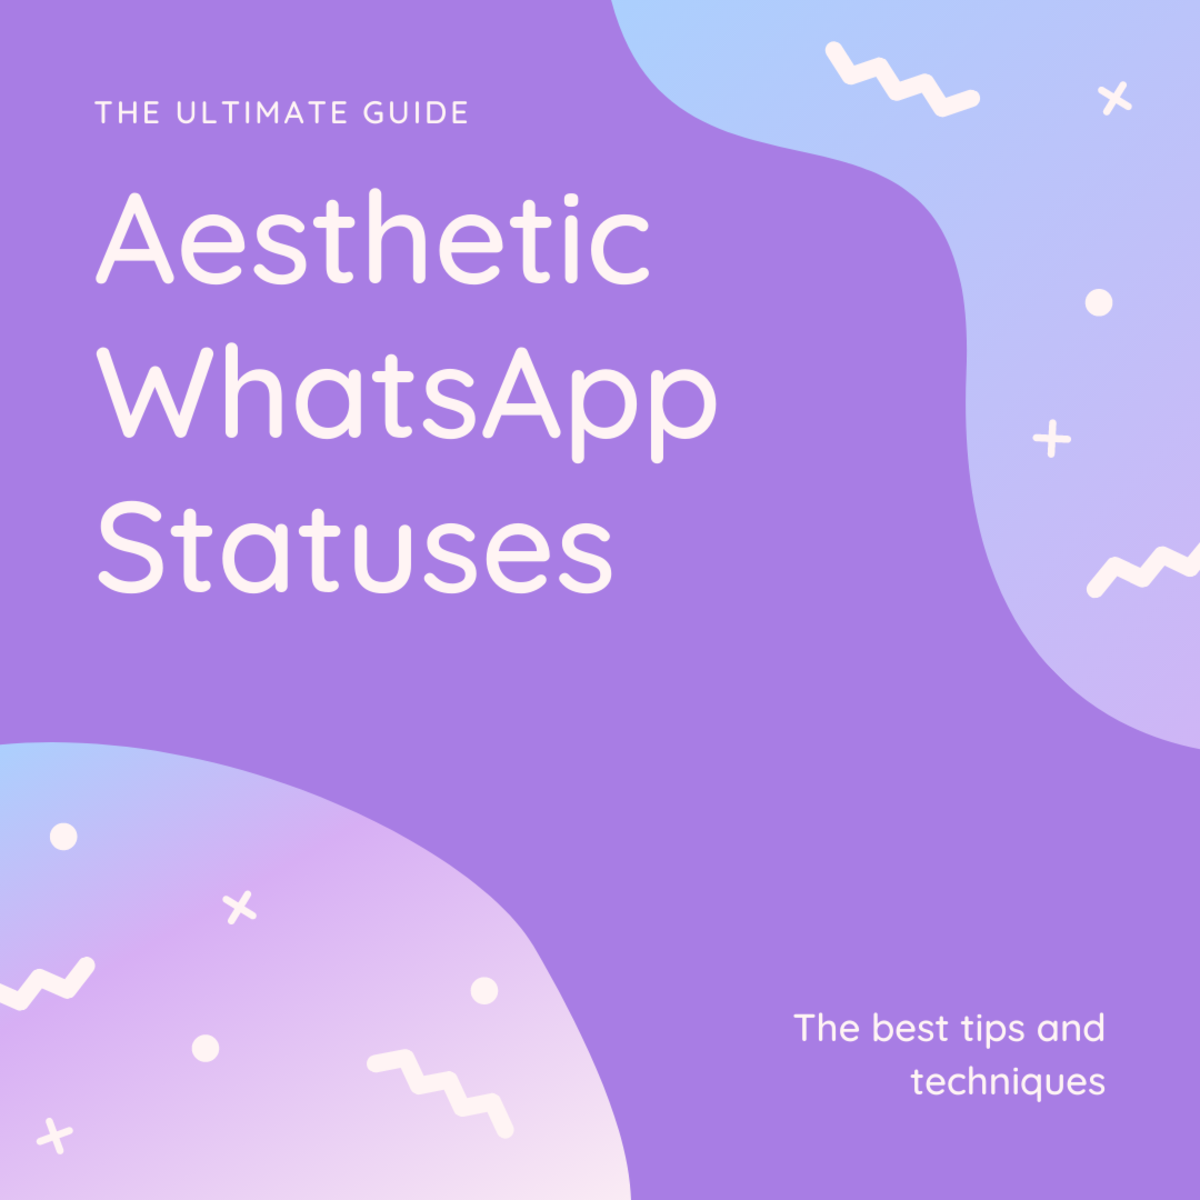 In this guide, we'll be taking a look at aesthetic WhatsApp statuses!